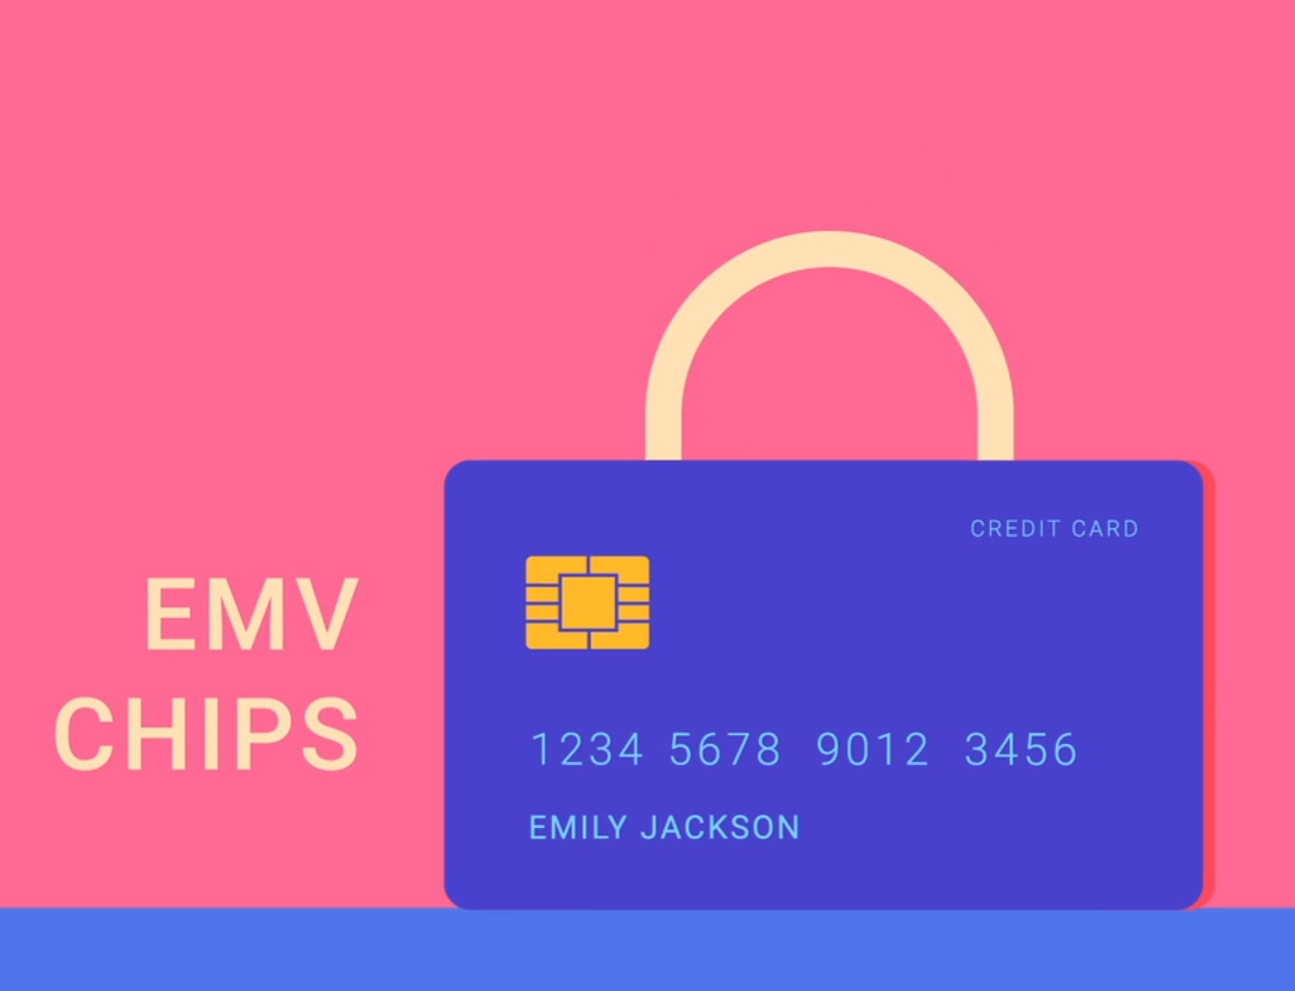 What is an EMV Chip?